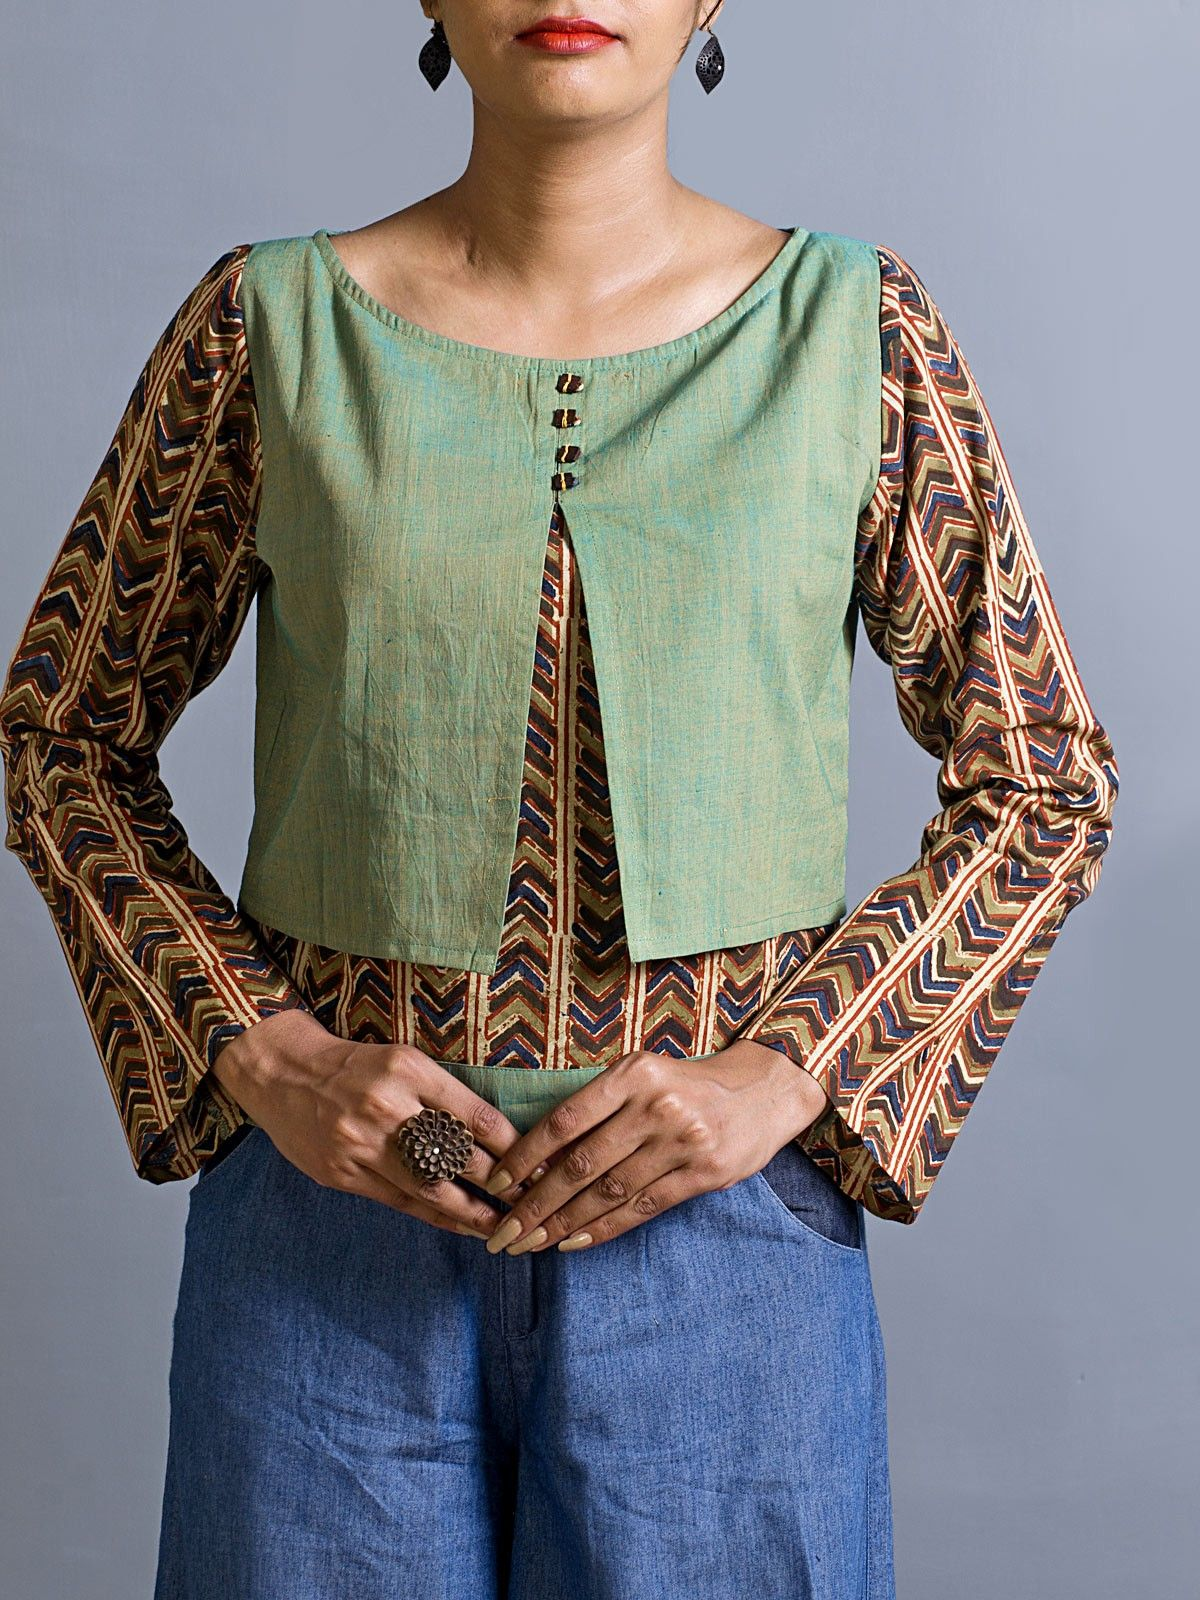 Shaivaal two way fissure crop top